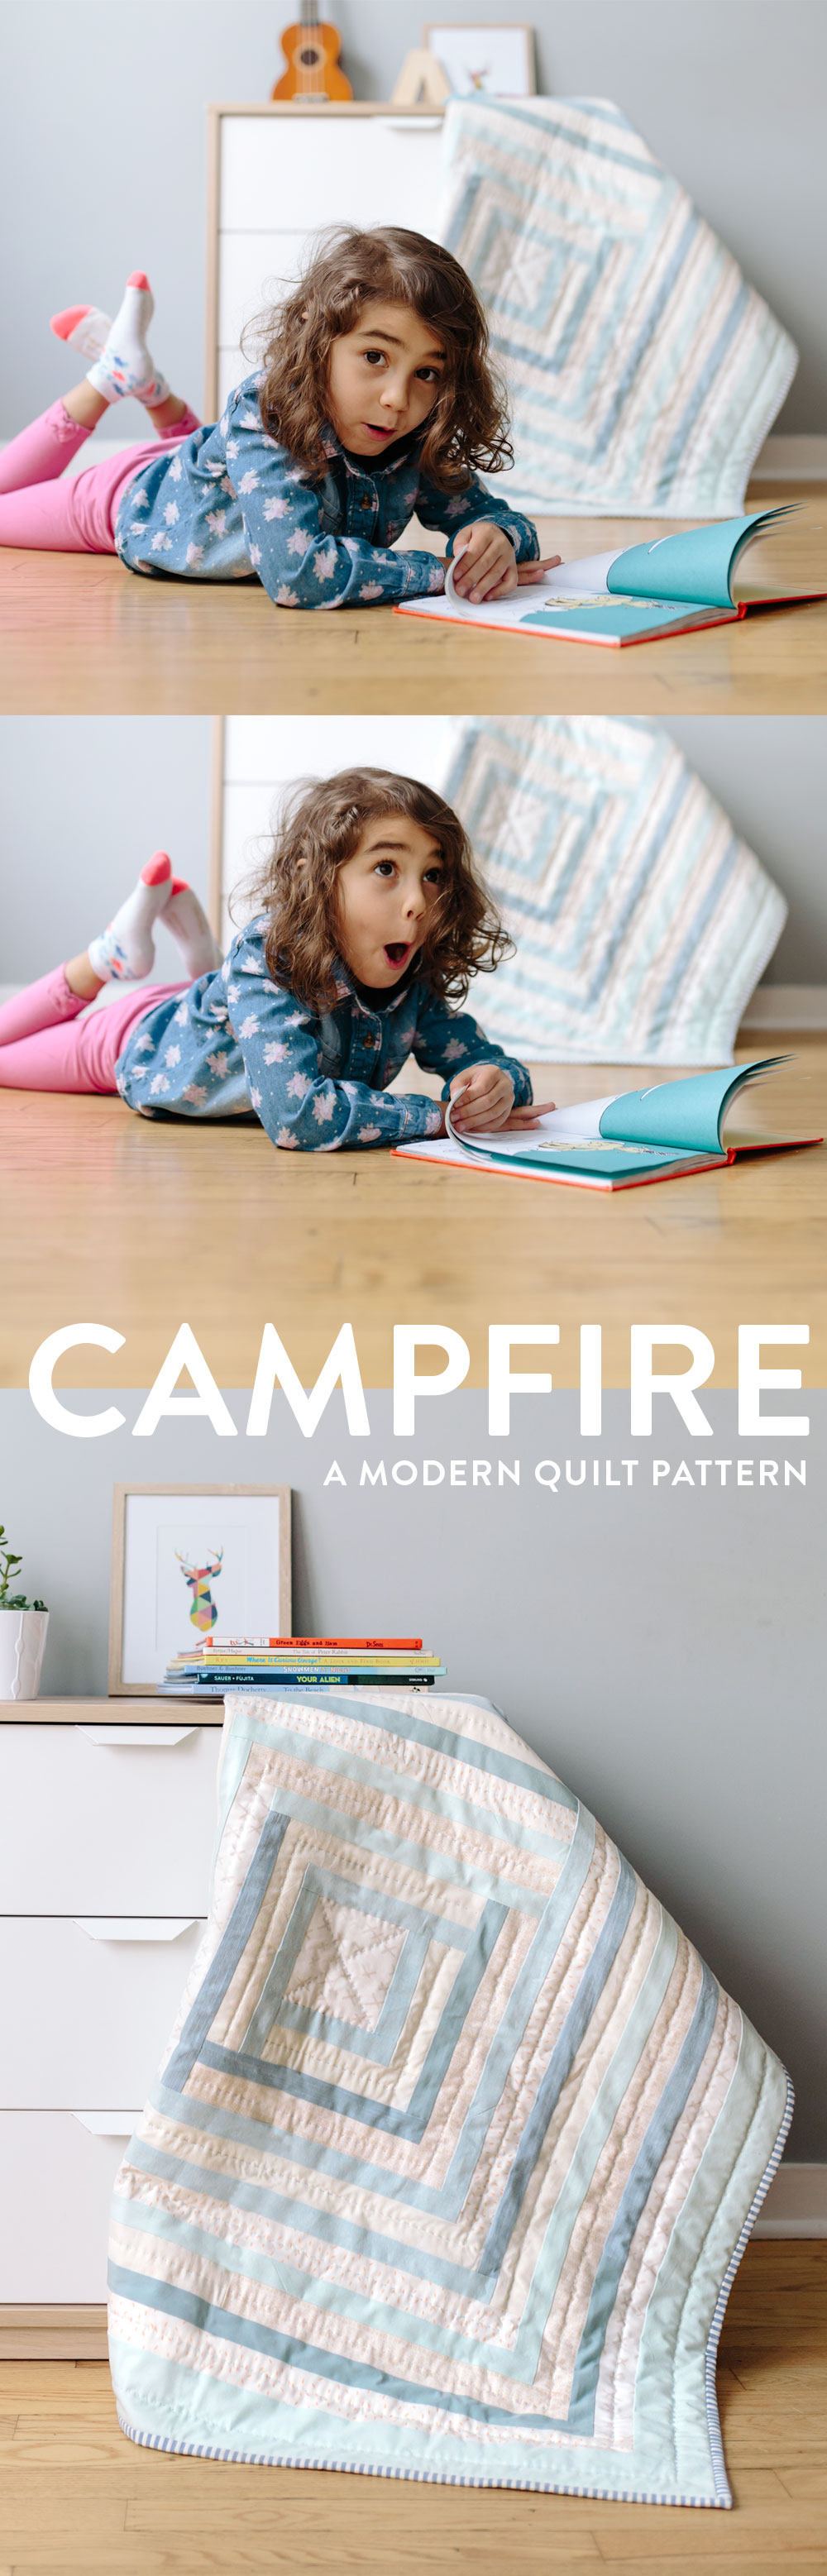 Campfire Modern Quilt Pattern PDF. A fresh interpretation of the traditional log cabin quilt block